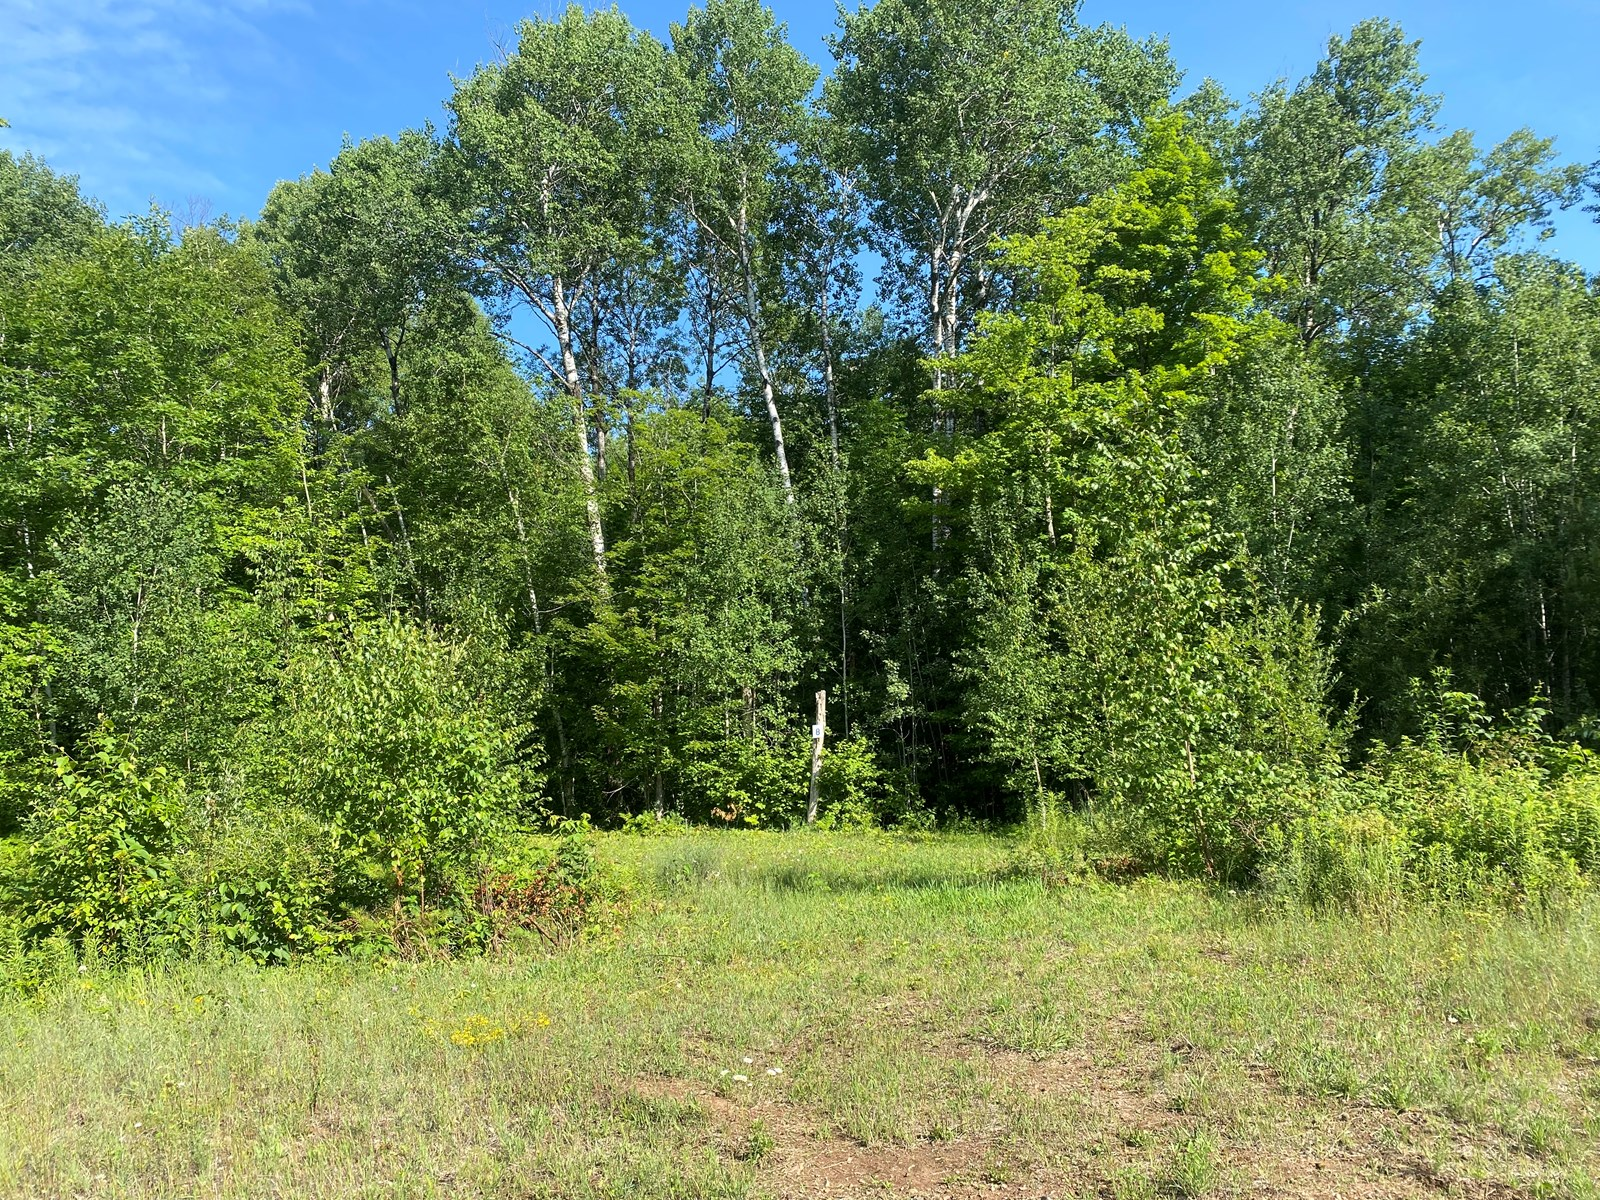 Ready-To-Build 1.88 Acre Lot For Sale In Sandstone MN